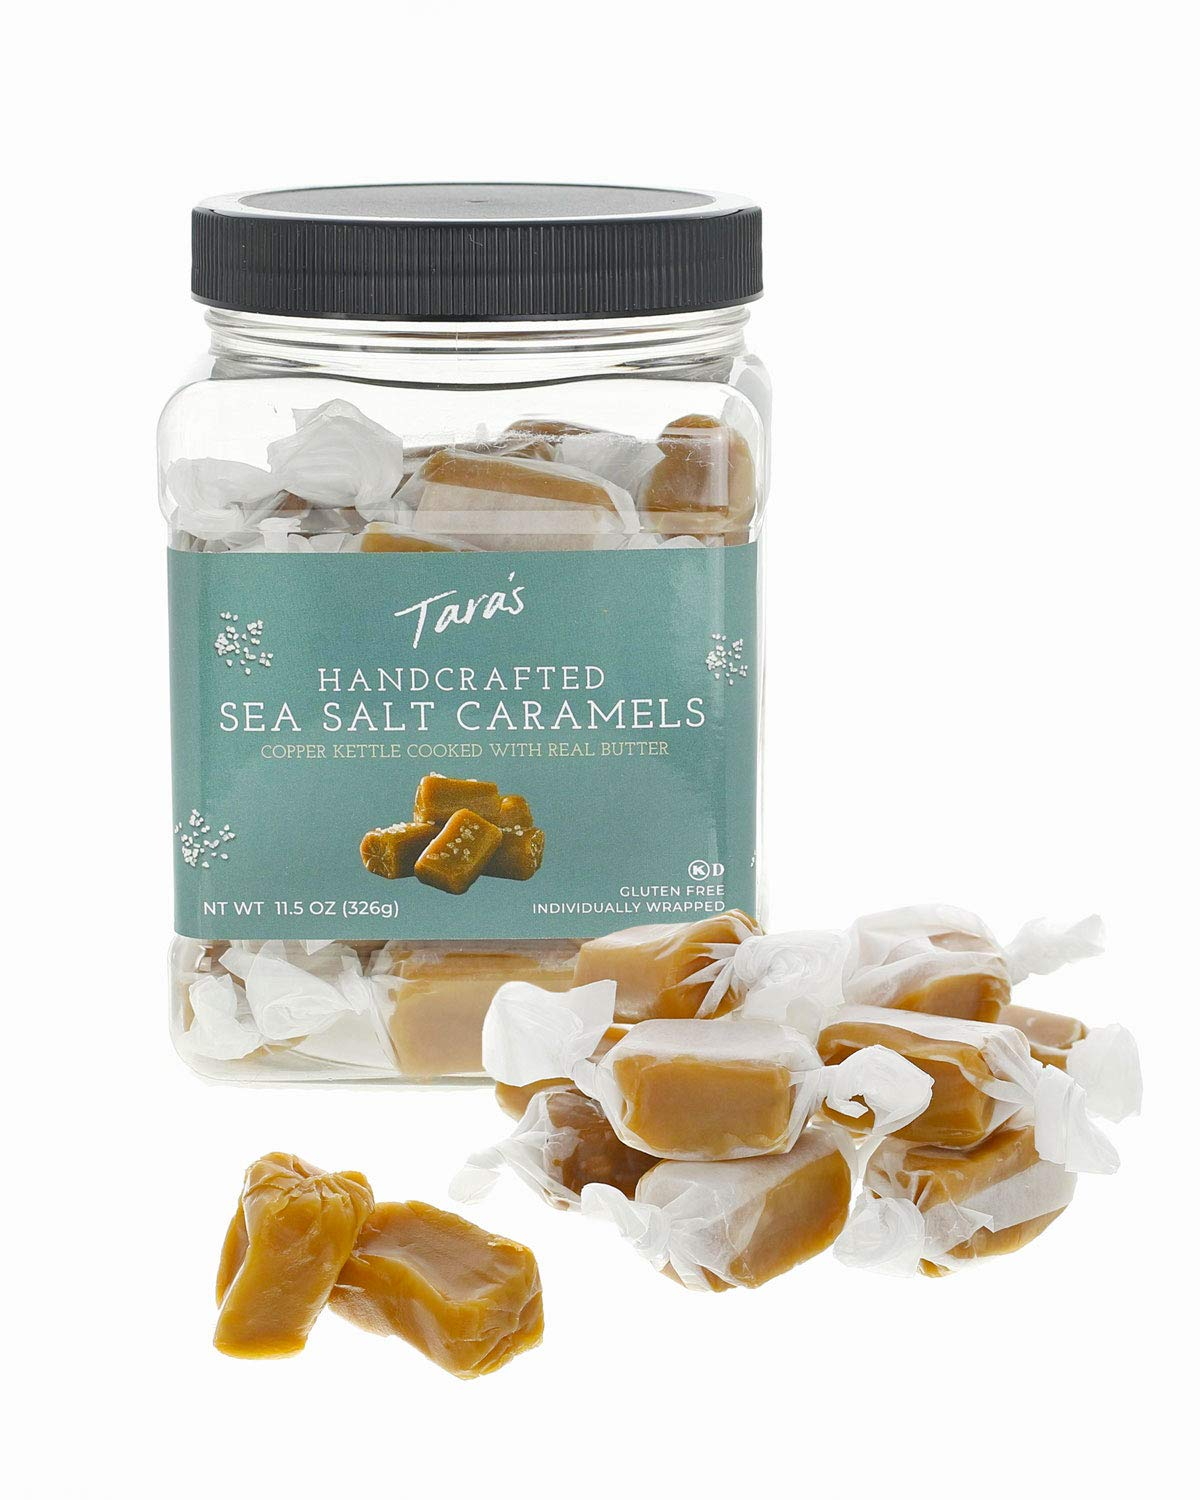 Tara's All Natural Handcrafted Gourmet Sea Salt Caramel: Small Batch, Kettle Cooked, Creamy & Individually Wrapped - 11.5 Ounce by Tara's (Image #4)